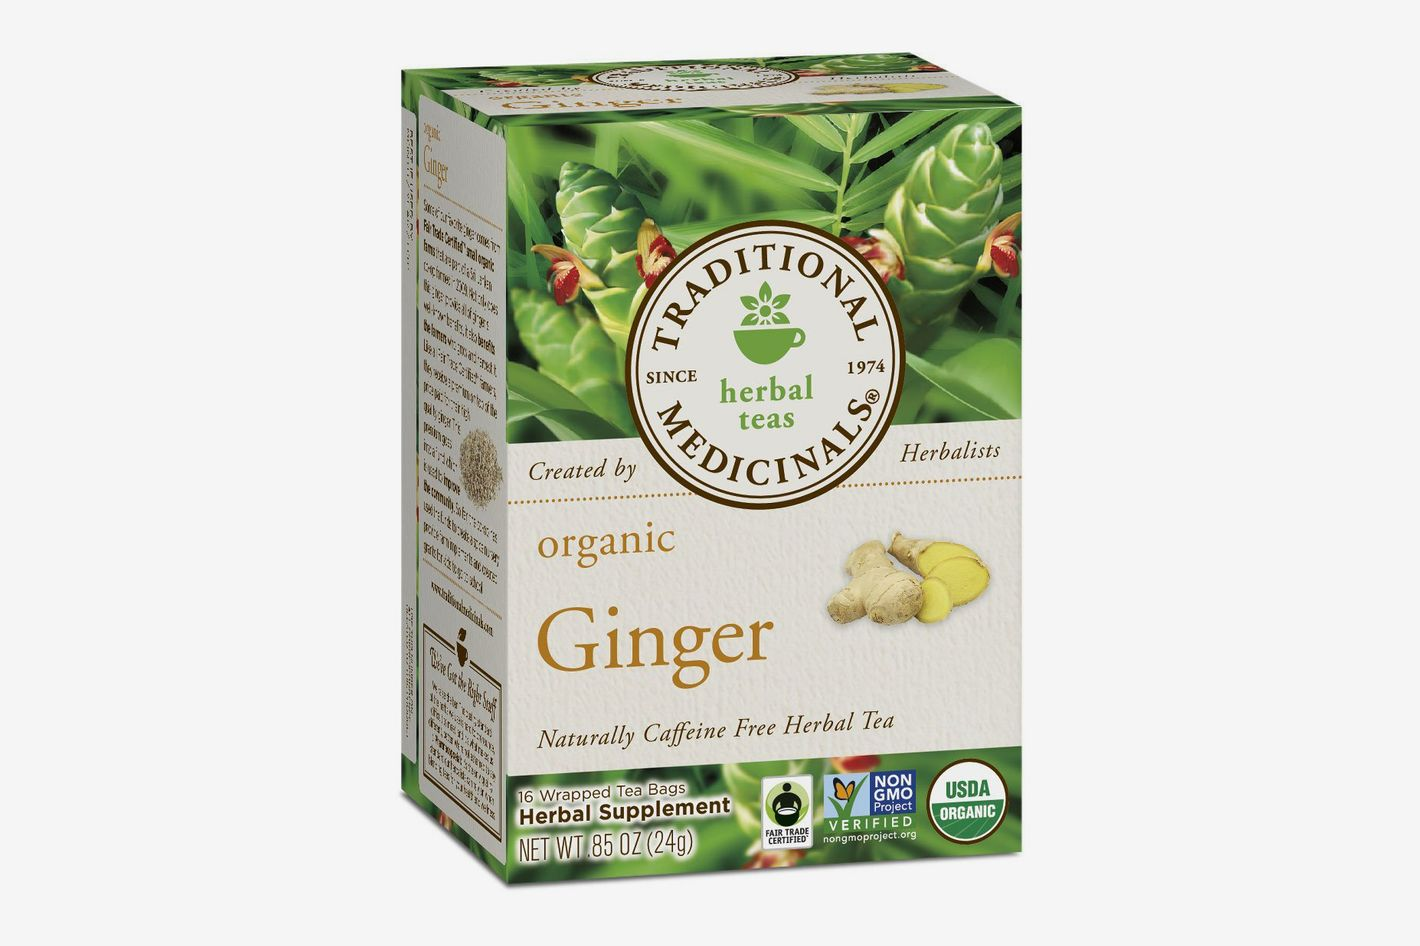 Traditional Medicinals Organic Ginger Tea, 16 Tea Bags (6-pack)